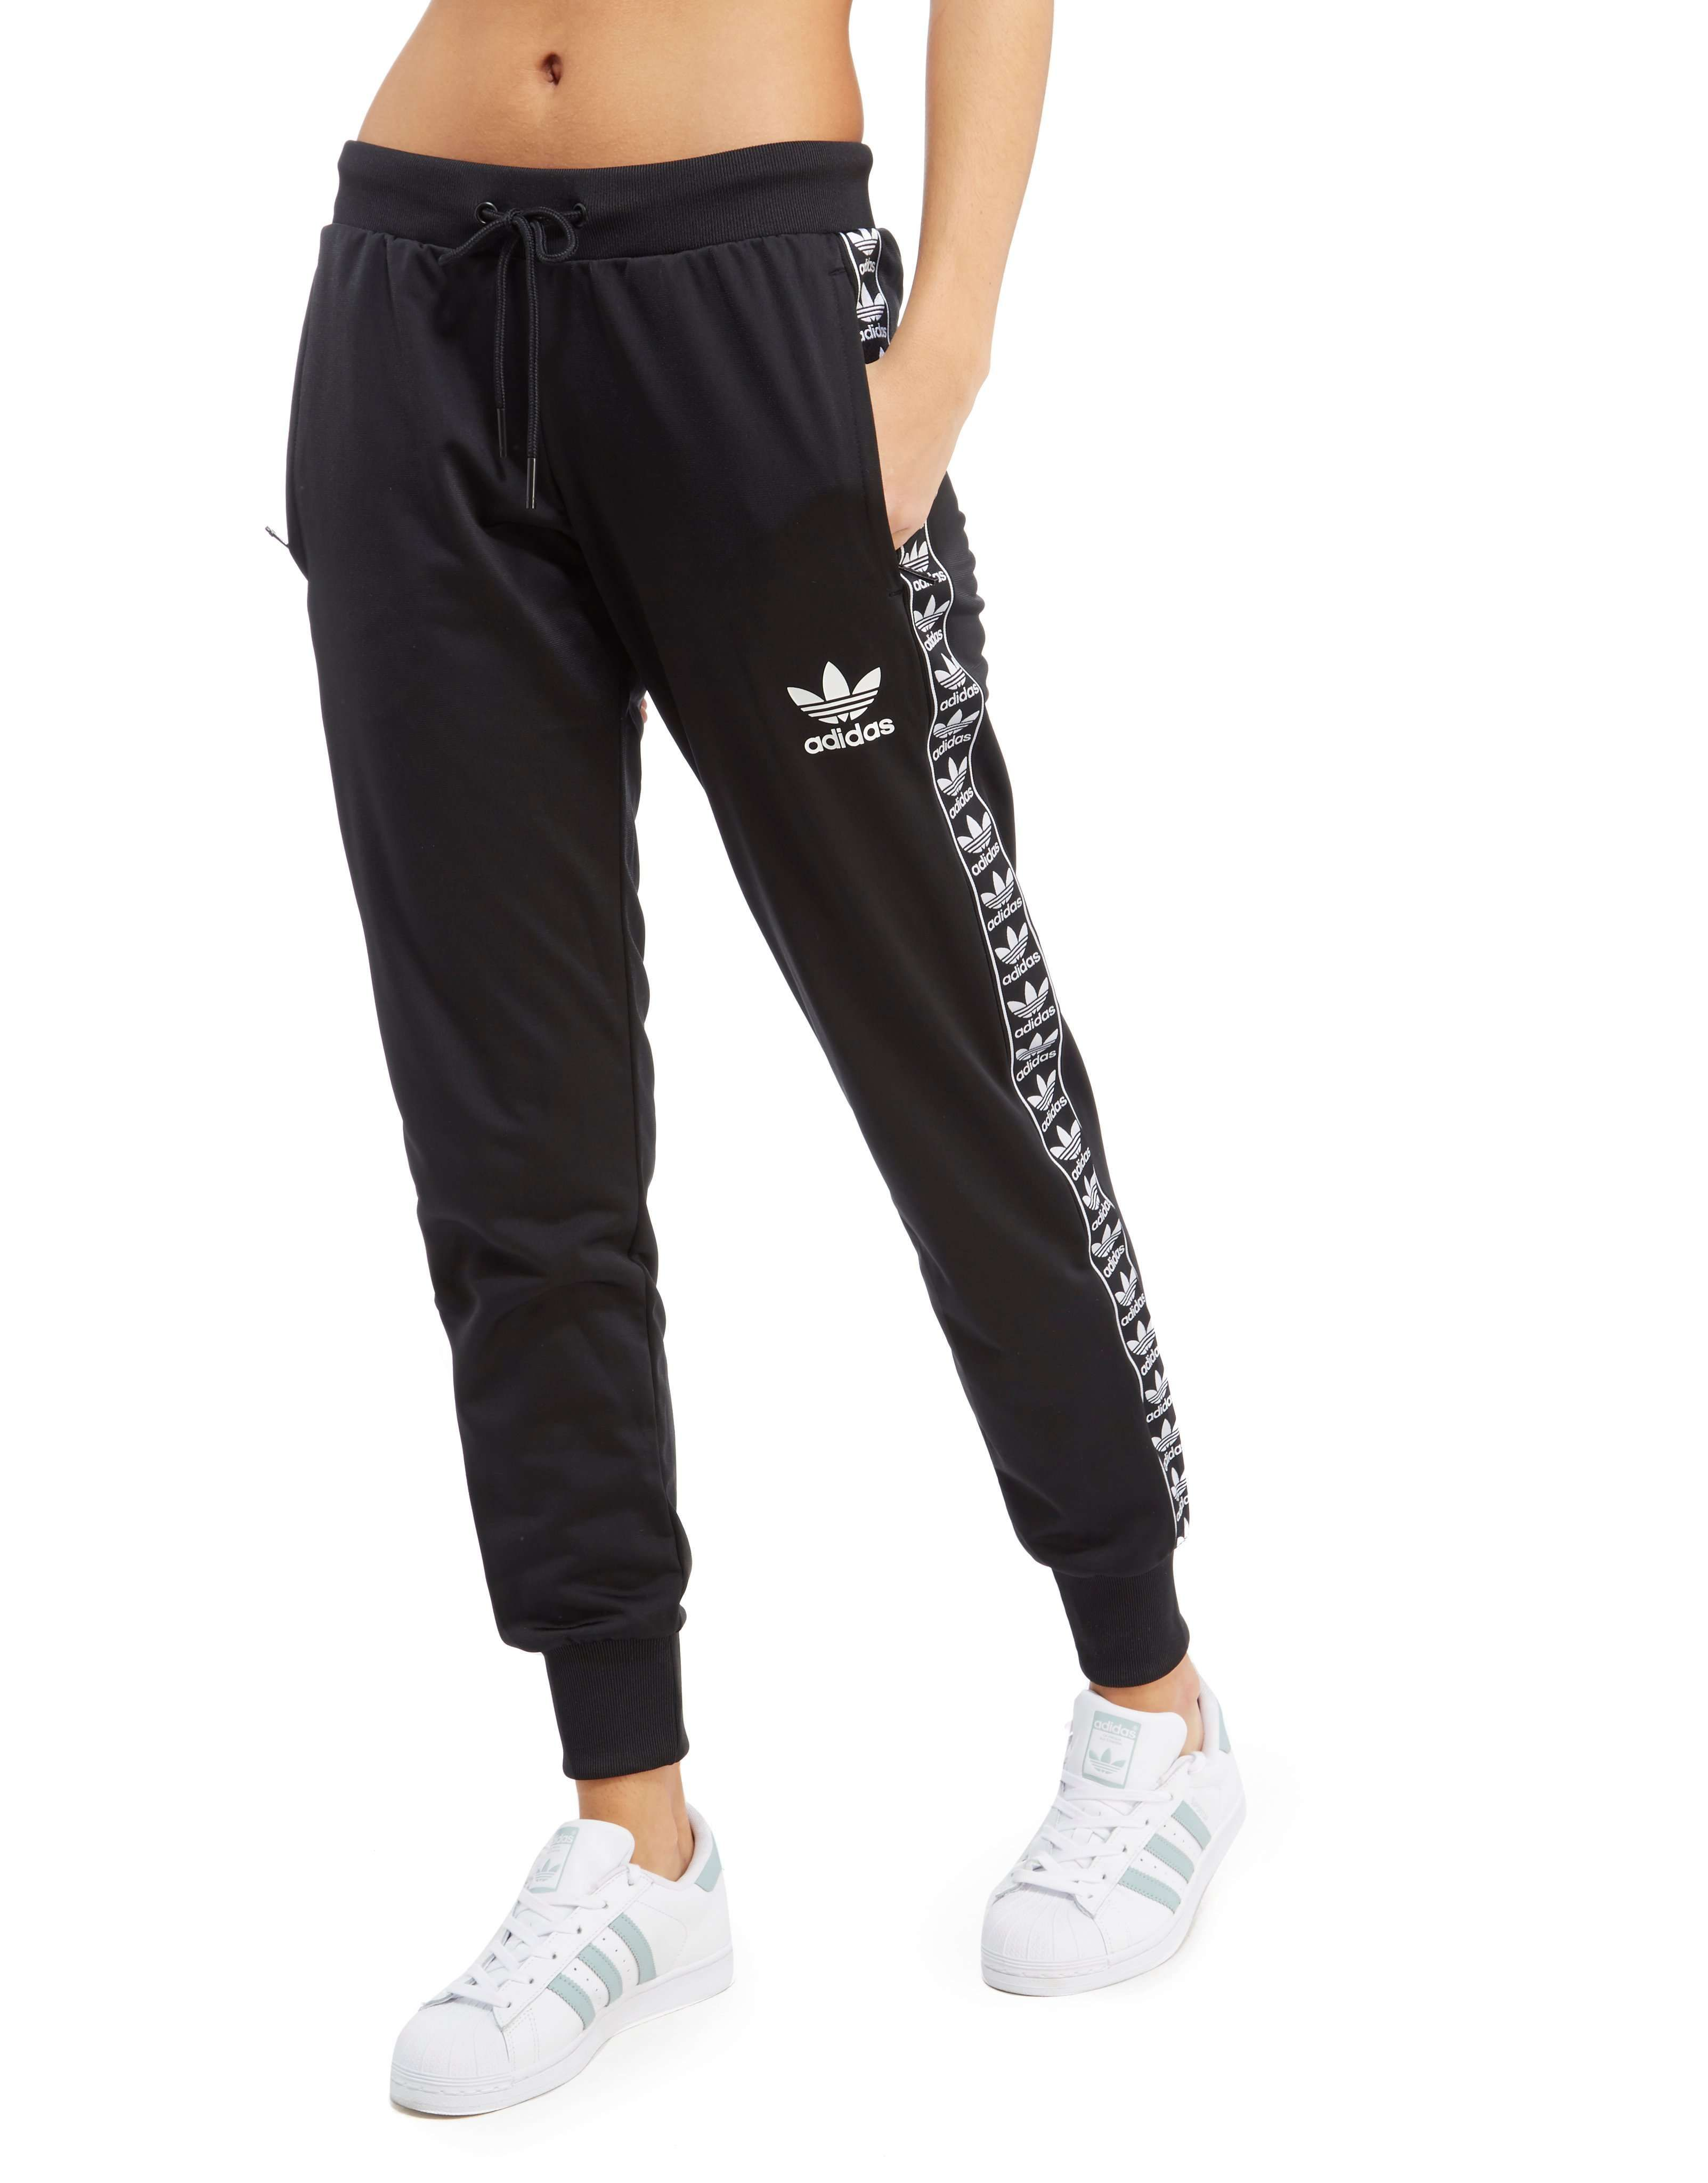 504c42414ade adidas Originals Firebird Tape Track Pants - Shop online for adidas  Originals Firebird Tape Track Pants